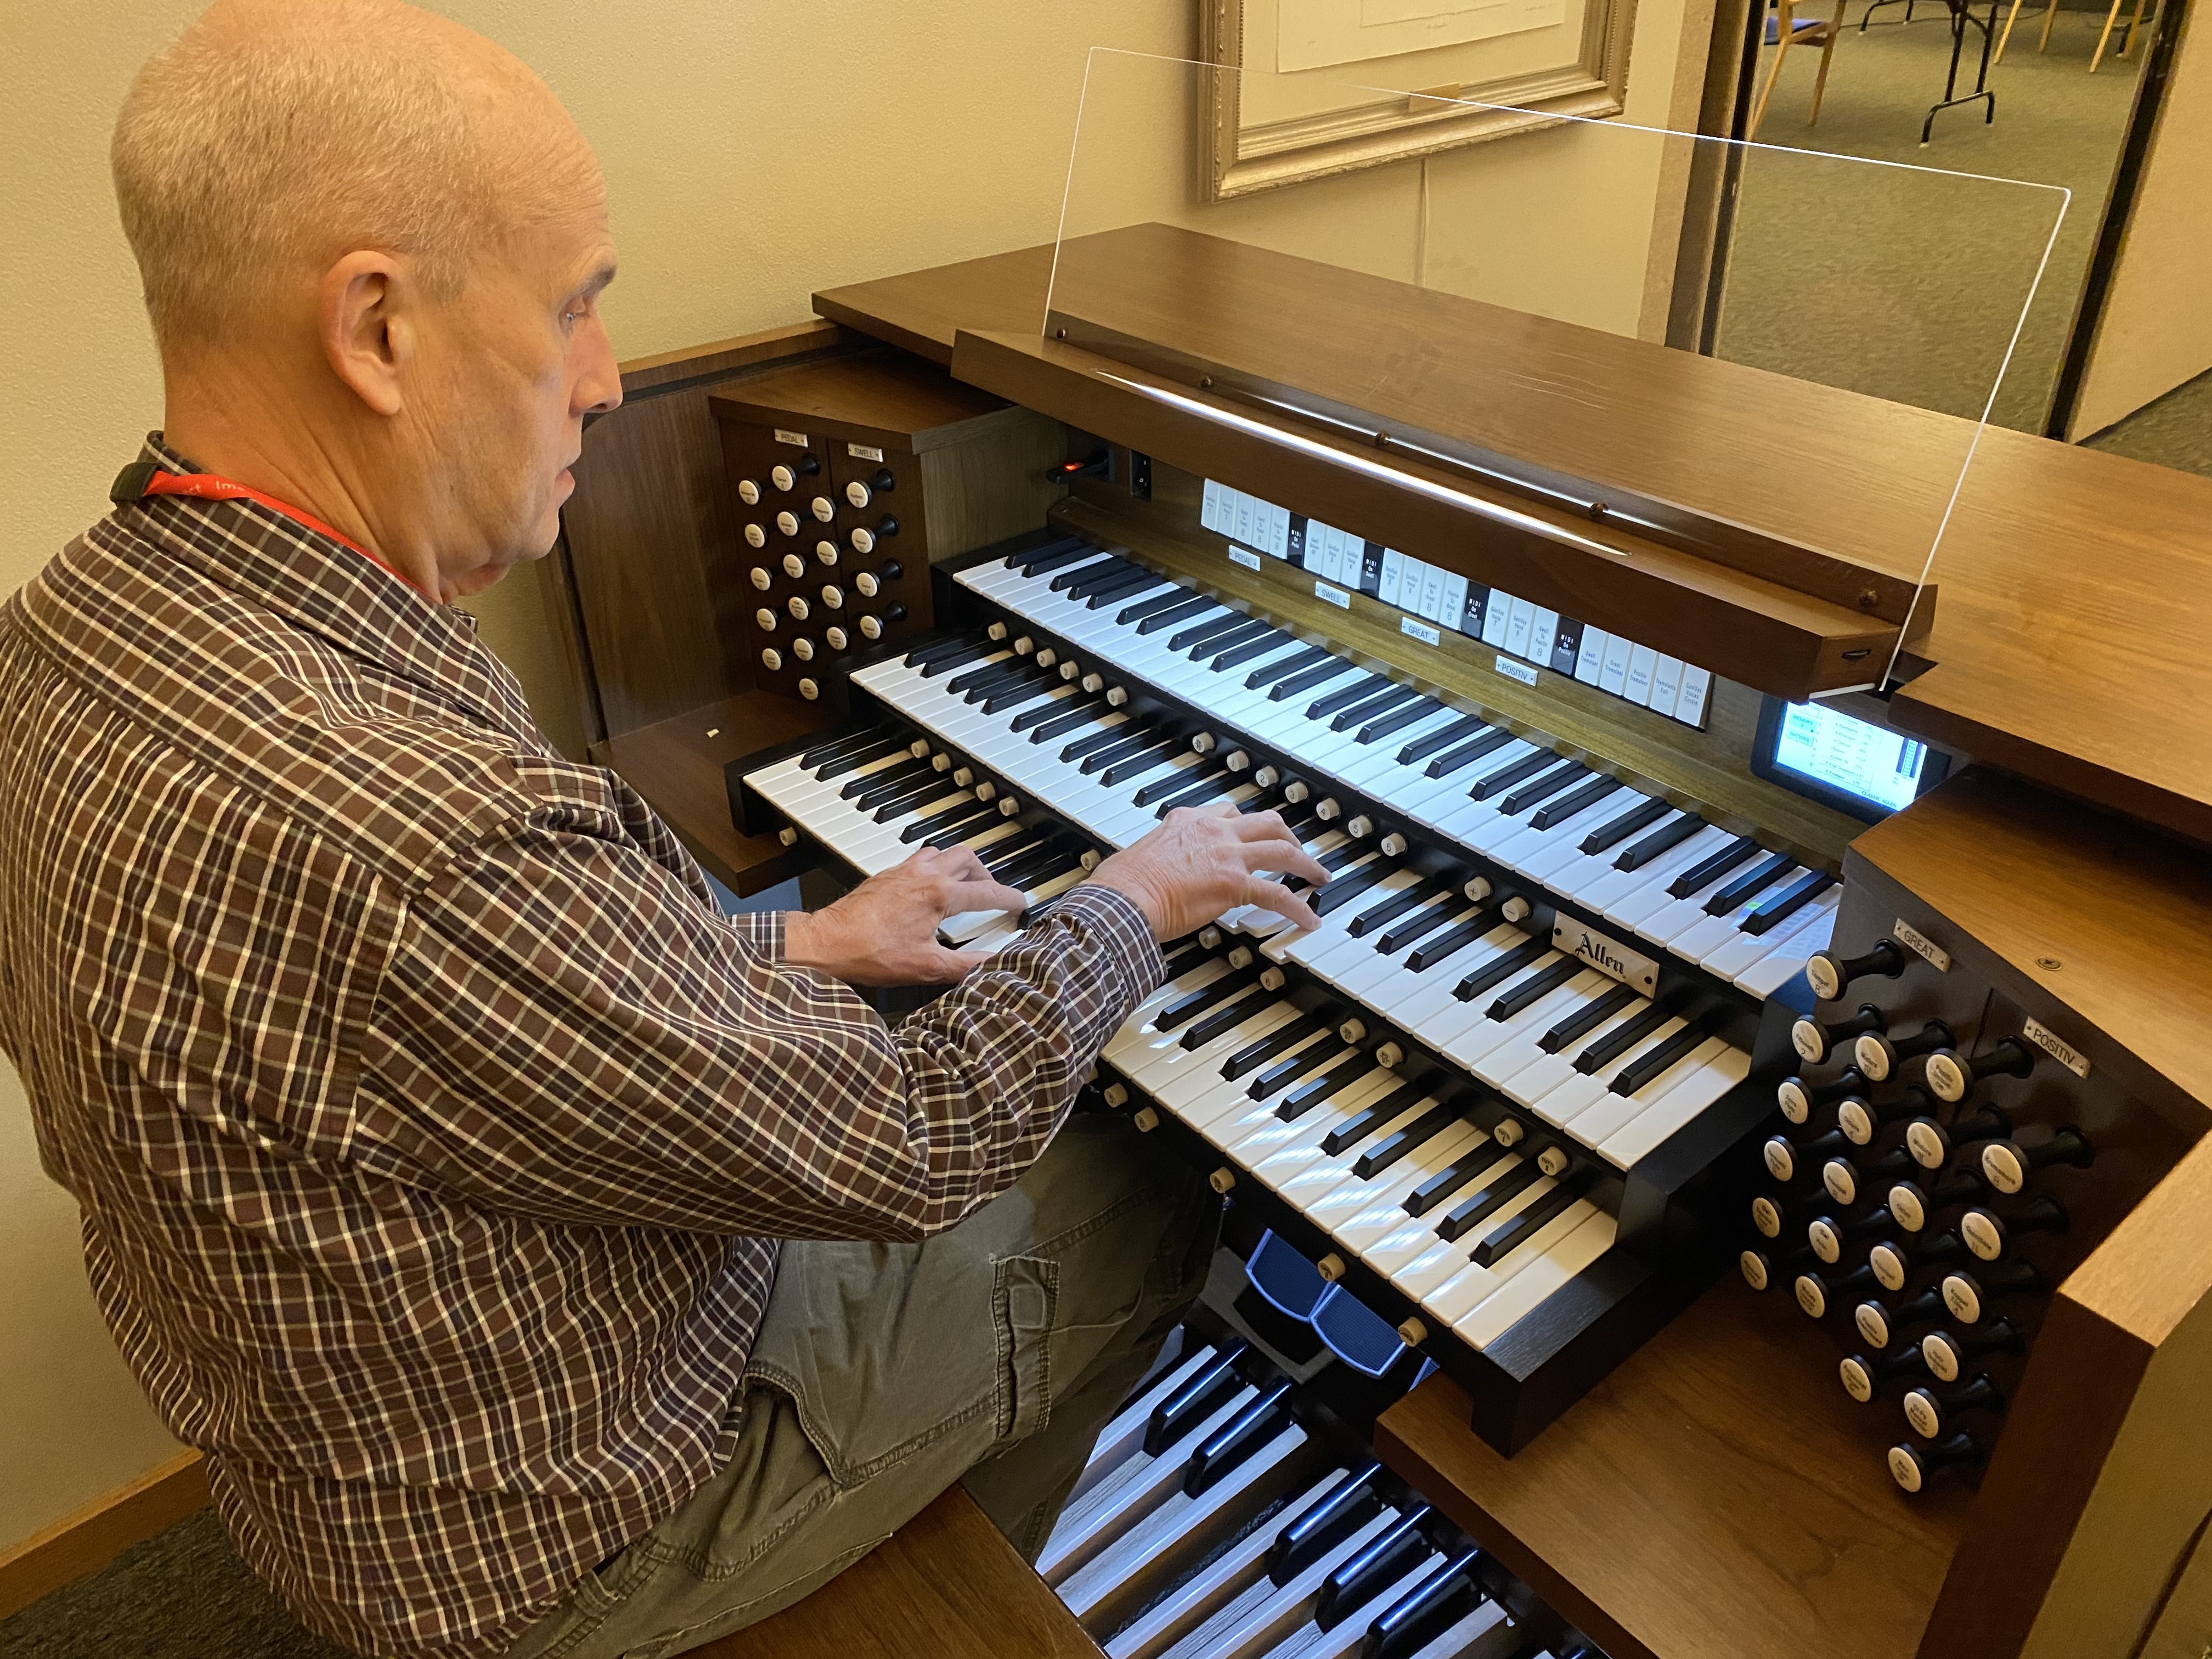 A new donated organ brings peace to residents